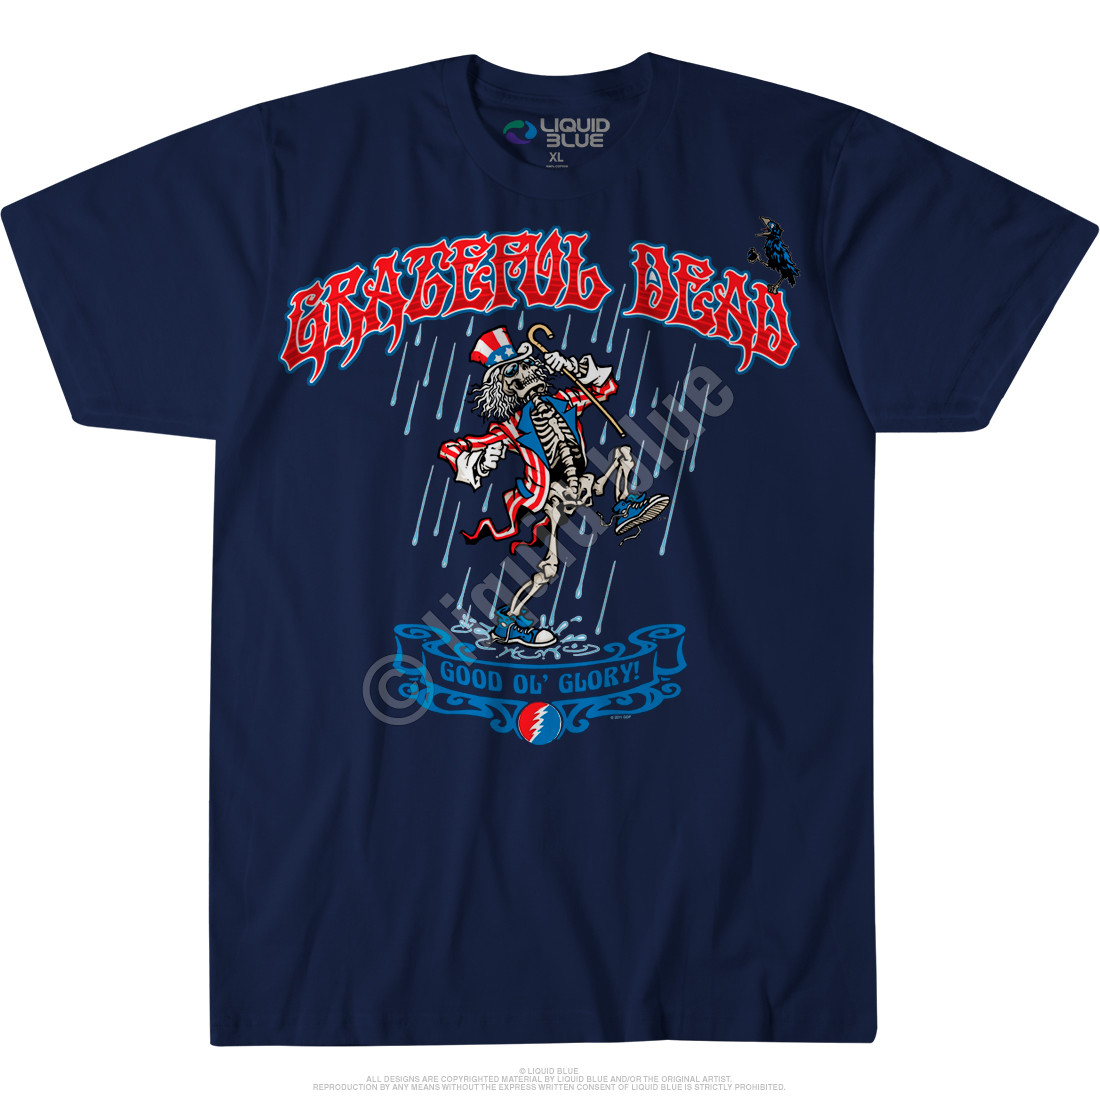 Good 'Ol Glory Custom T-Shirt